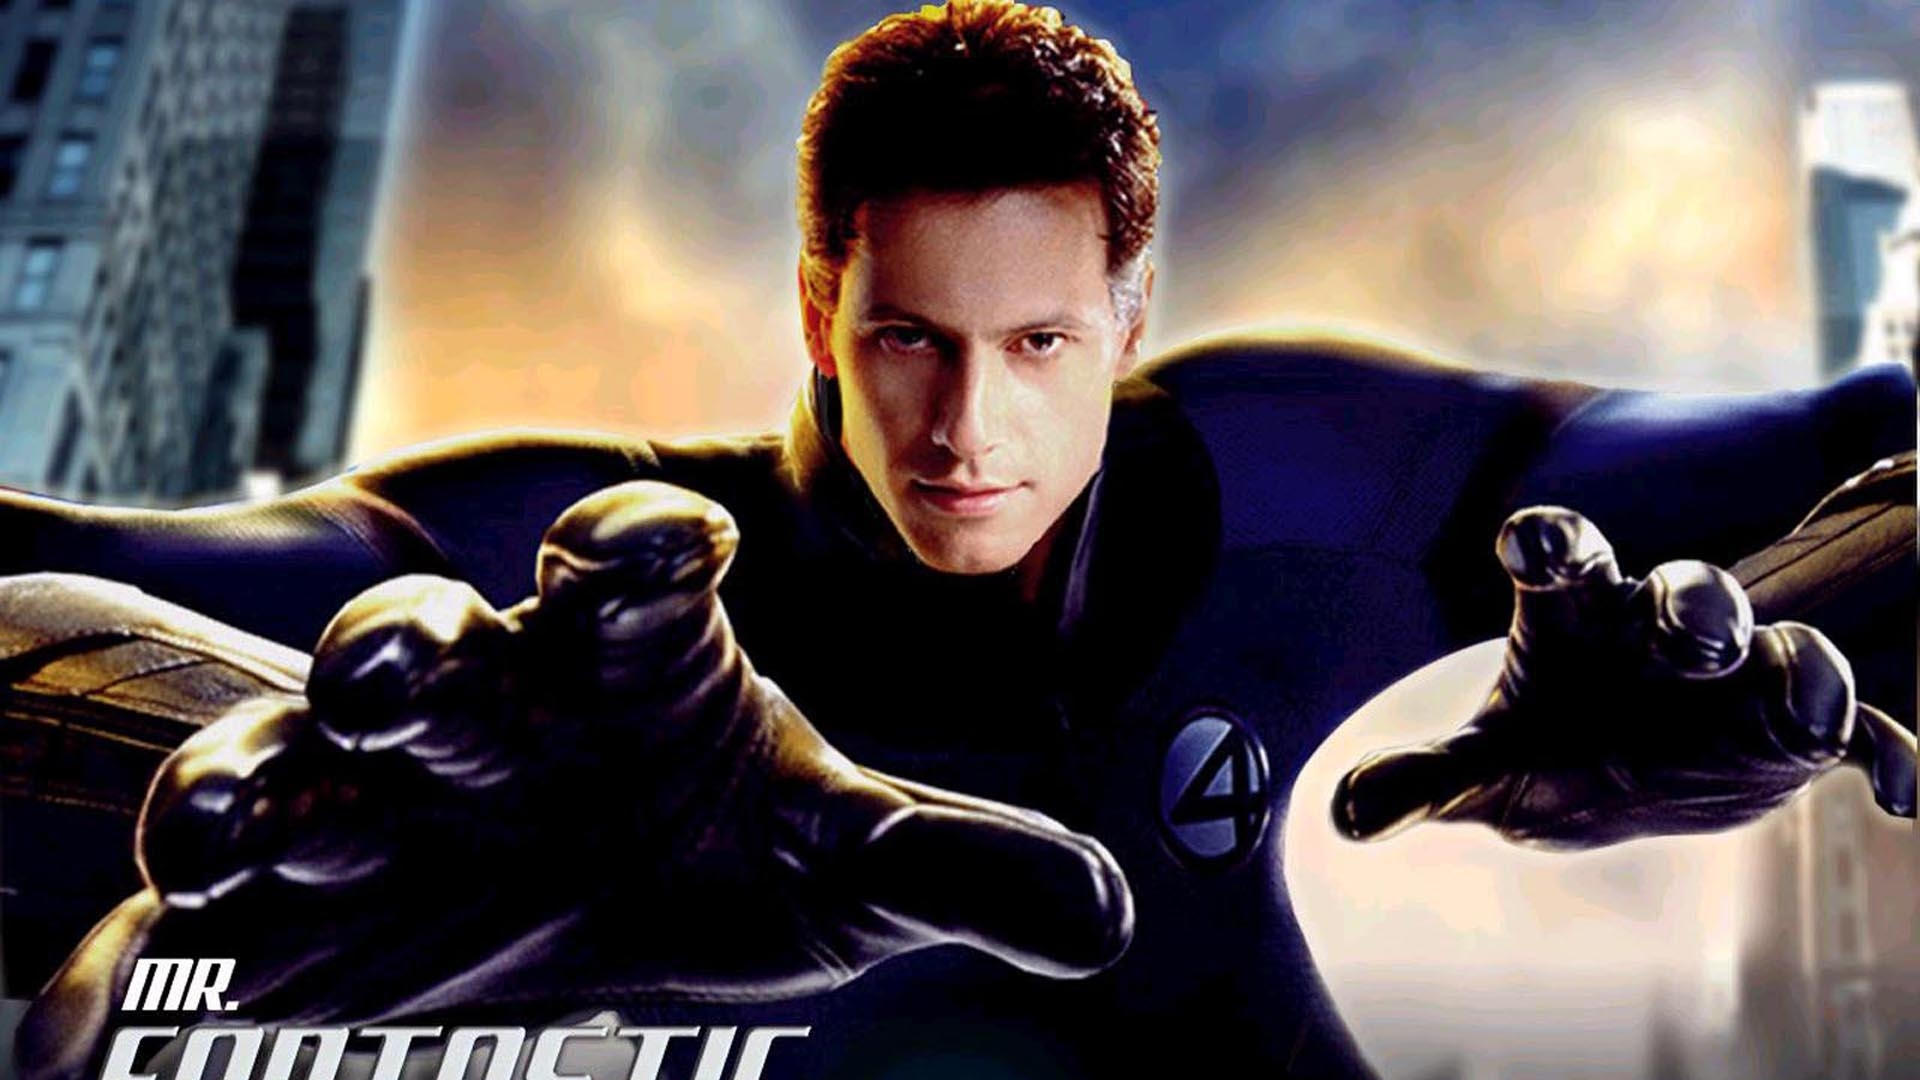 mr fantastic 4 wallpaper 1920x1080